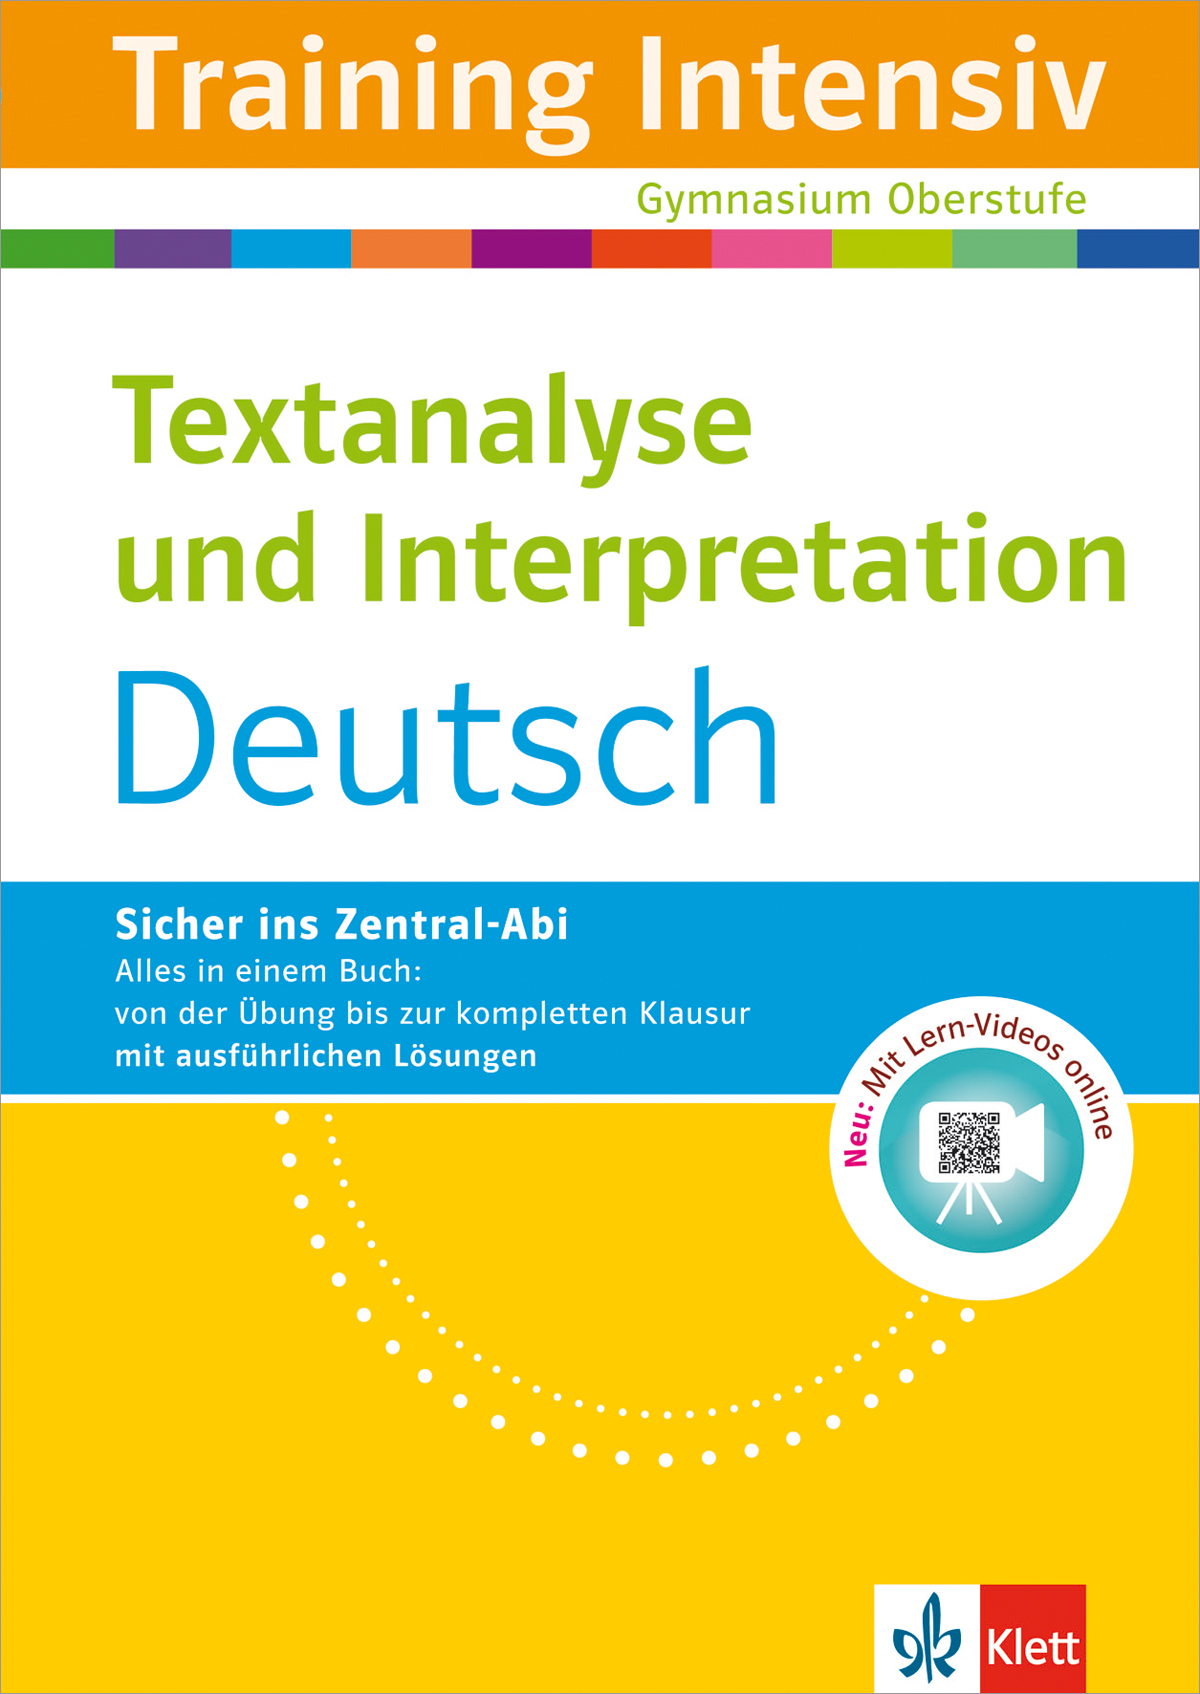 Textanalyse und Interpretation Deutsch: mit Lern-Videos online Claus Gigl